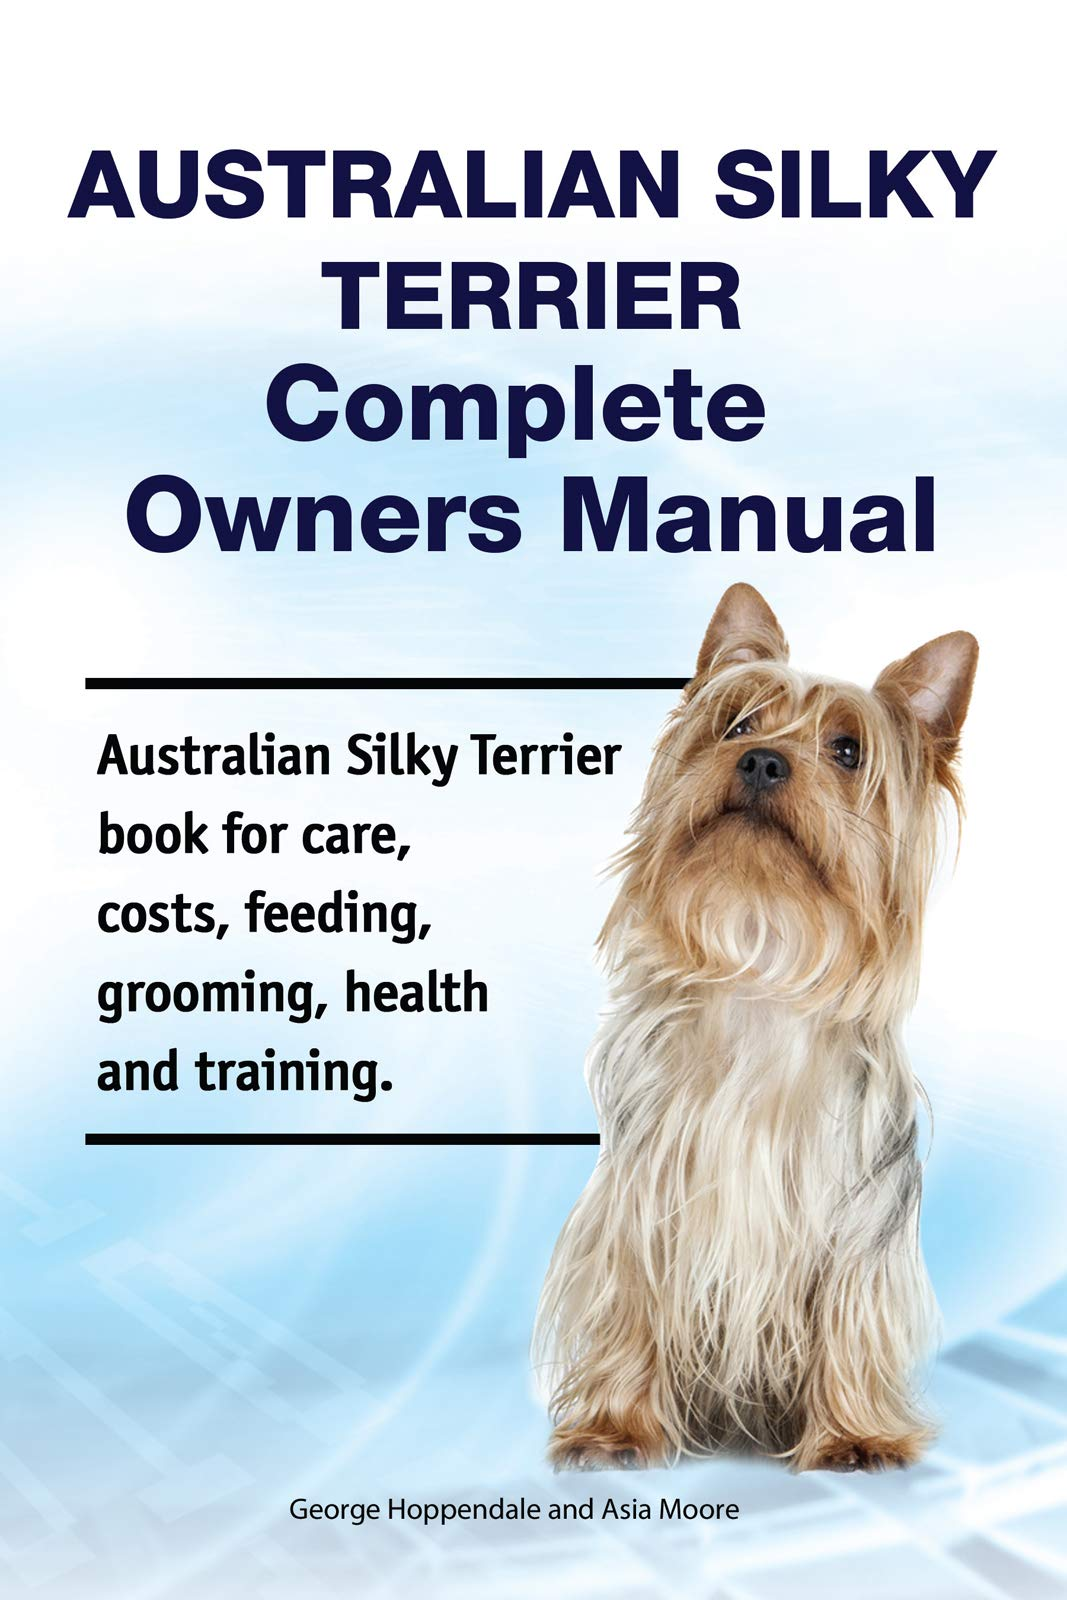 Australian Silky Terrier Complete Owners Manual. Australian Silky Terrier book for care, costs, feeding, grooming…